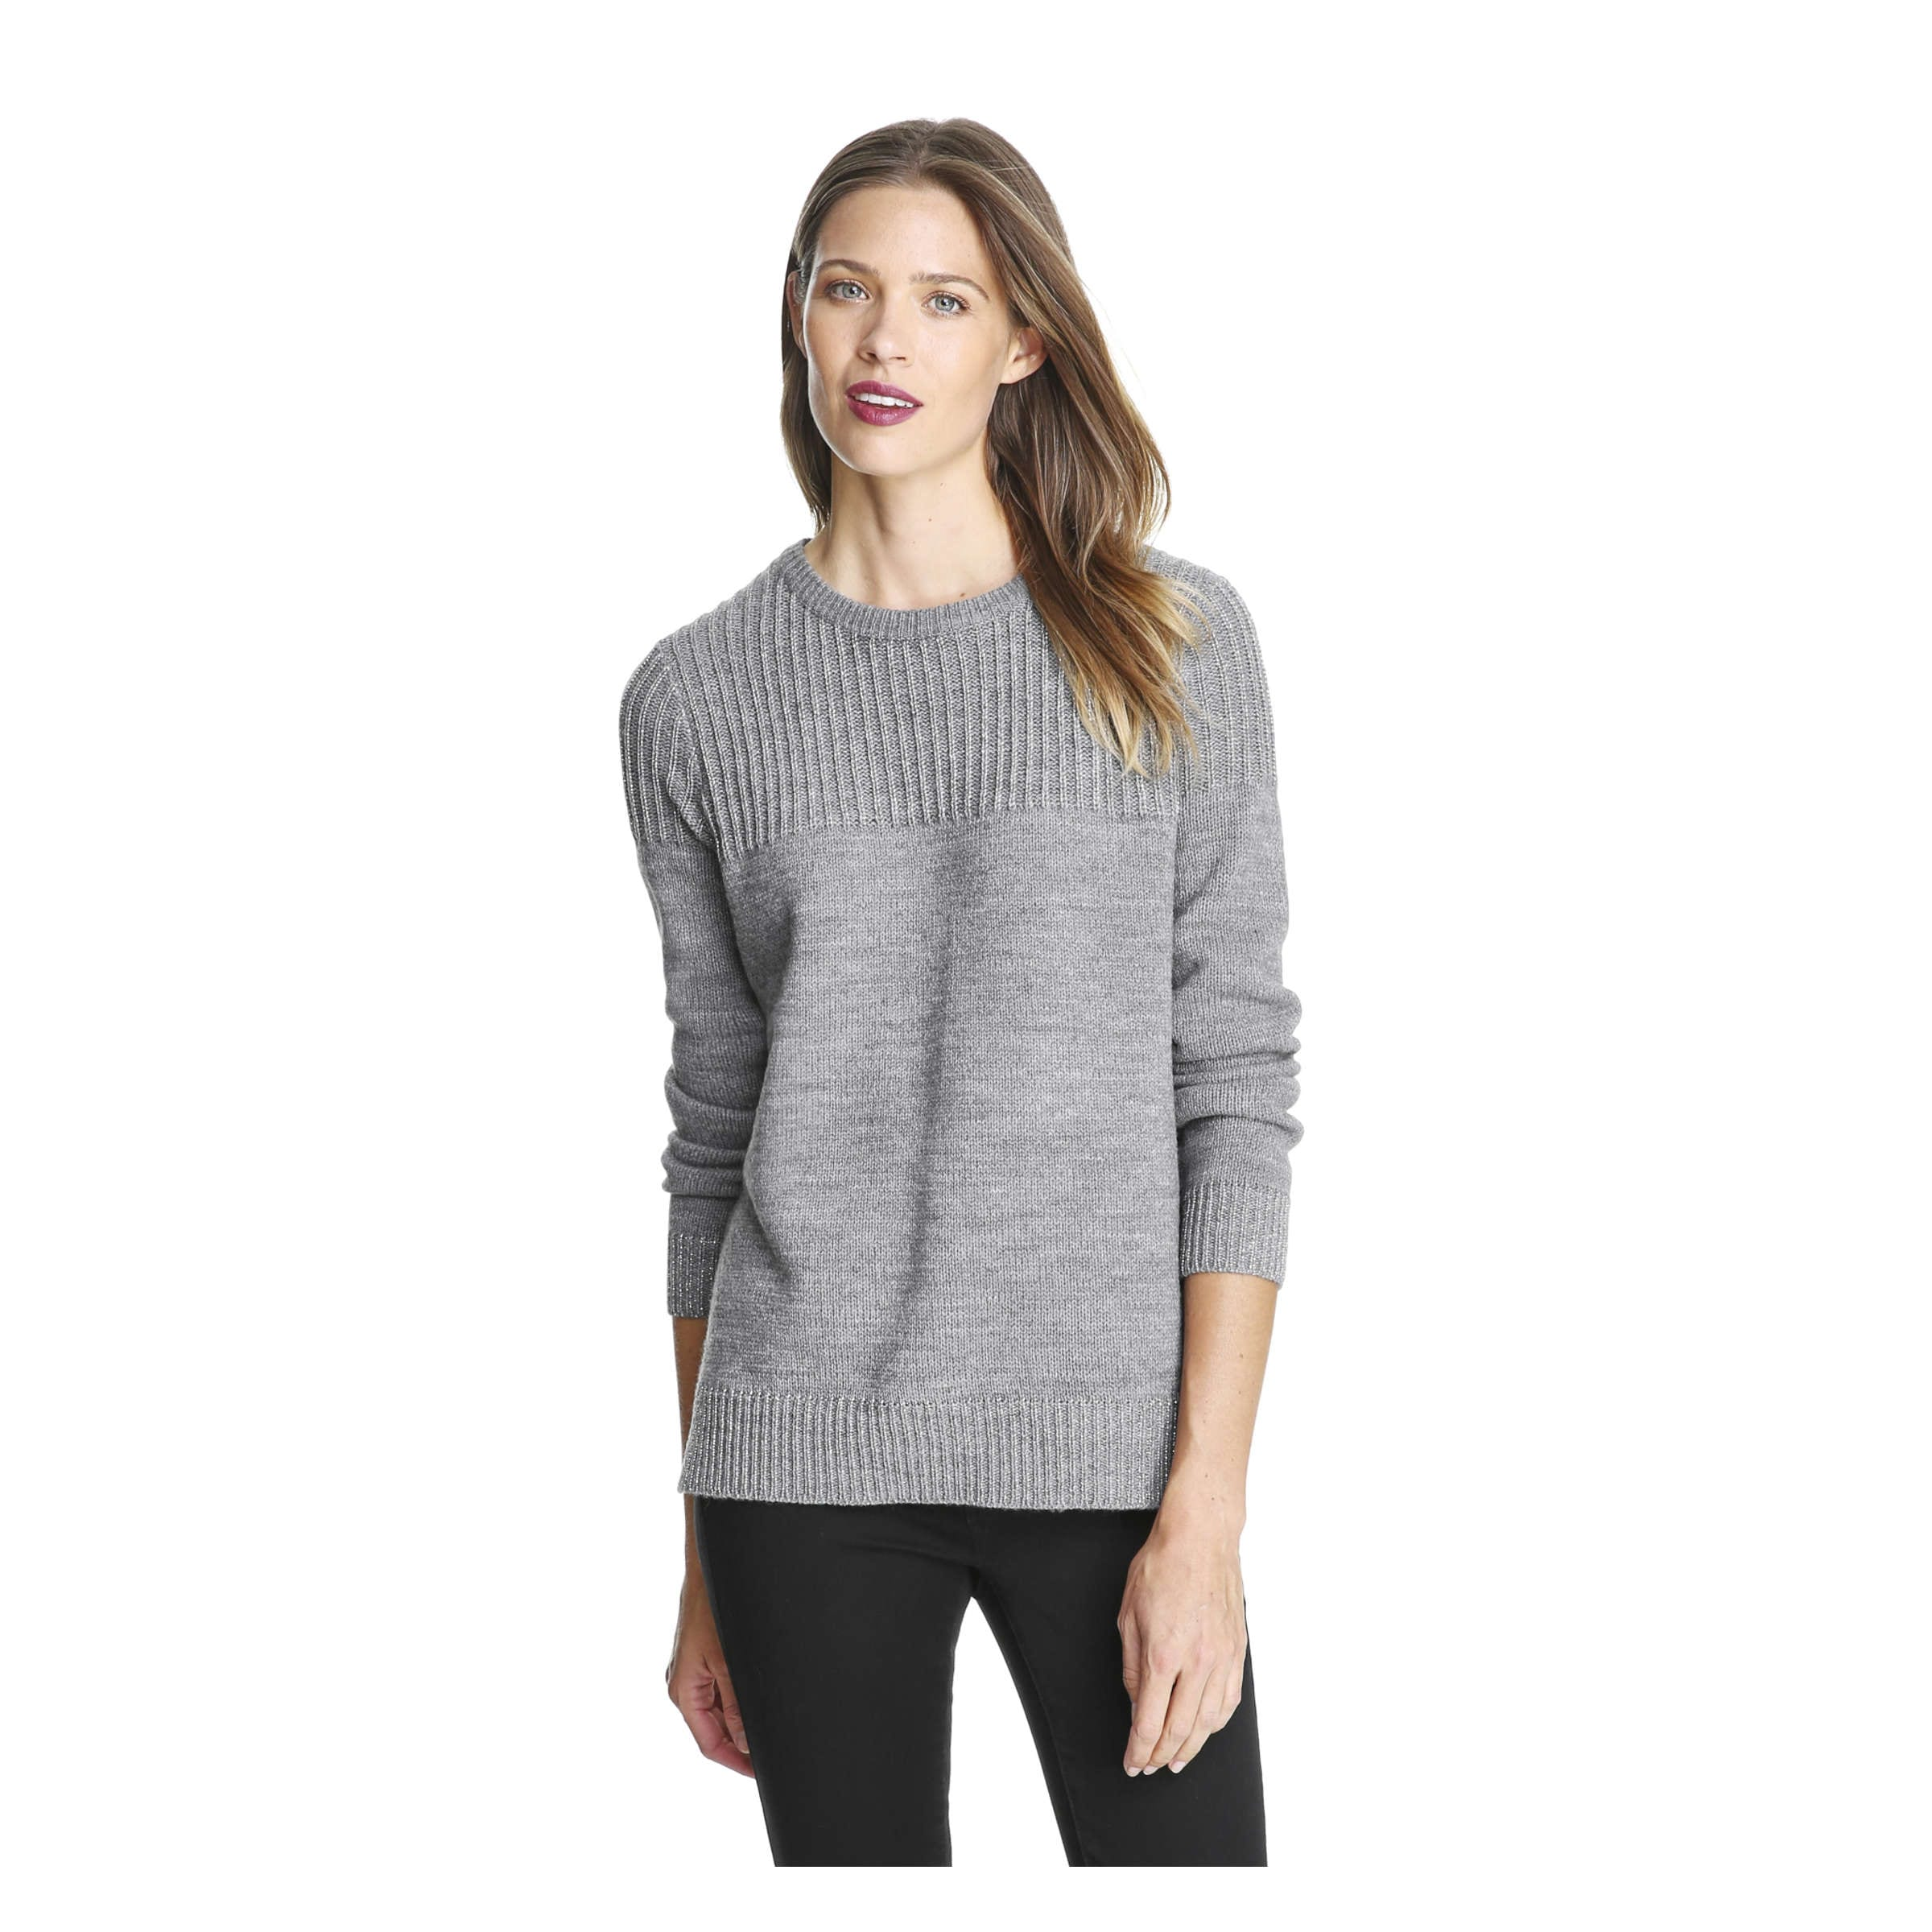 2774756cdd Joe Fresh Sparkle Rib Crew Neck Sweater